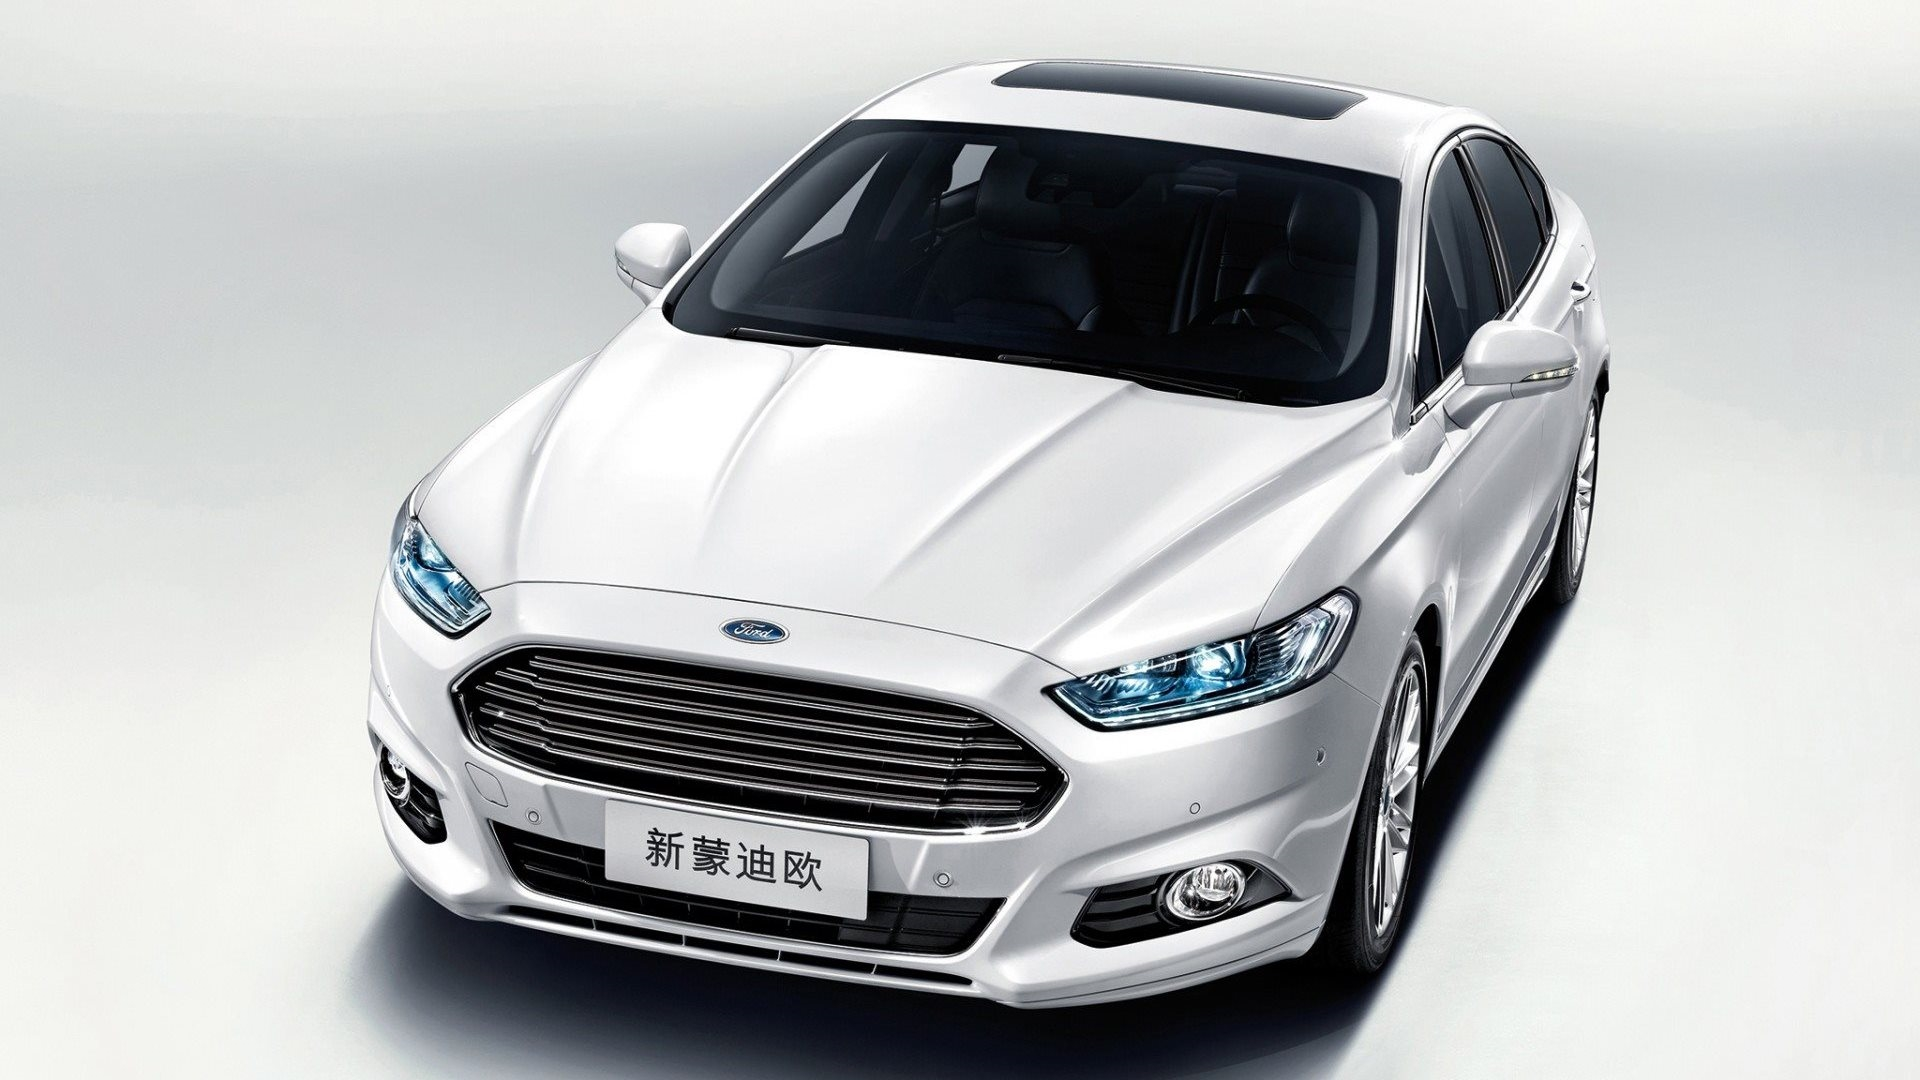 Ford Mondeo 2017 Hd Wallpapers